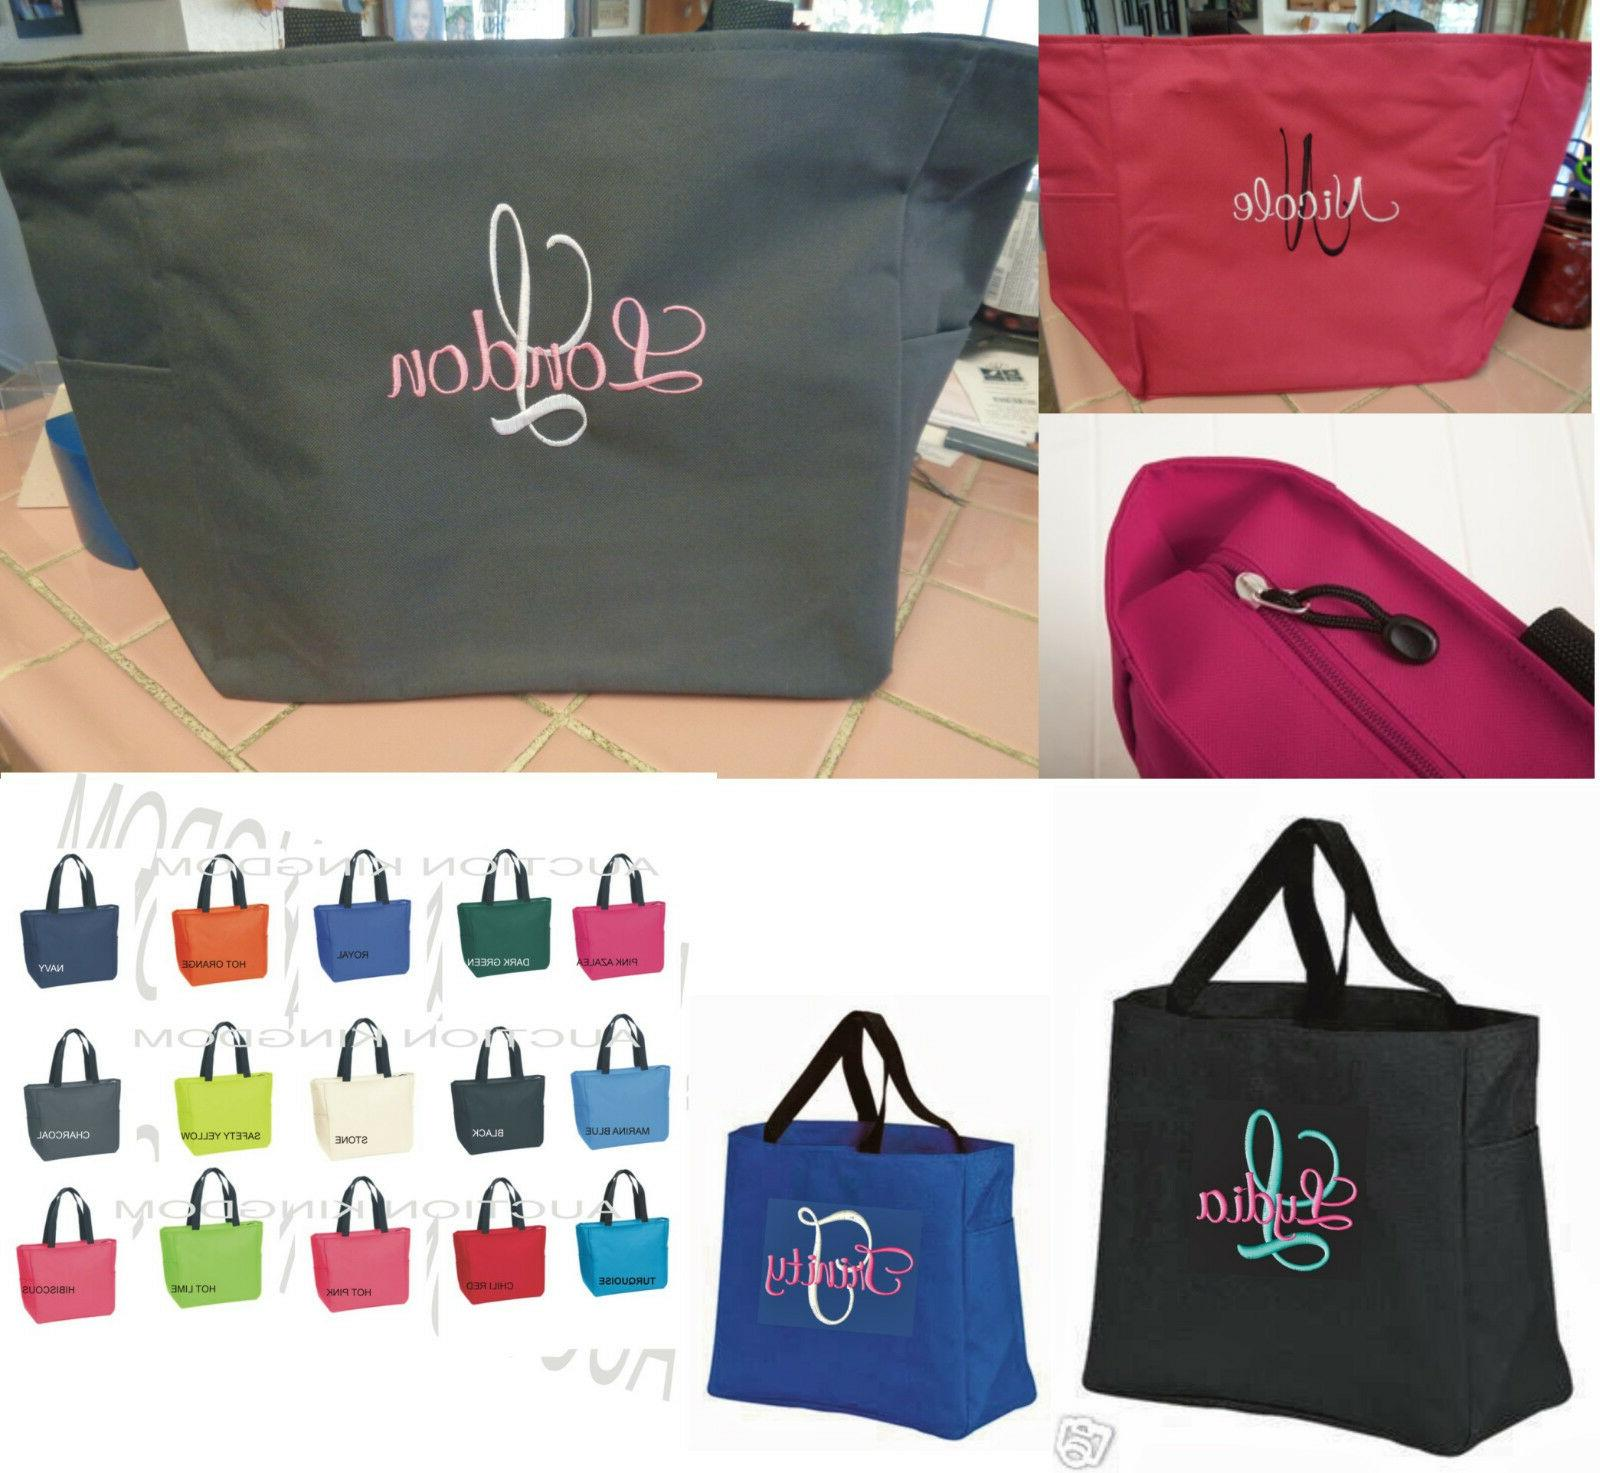 1 Personalized Tote Bag Monogram Bridesmaid Gift Wedding BRI